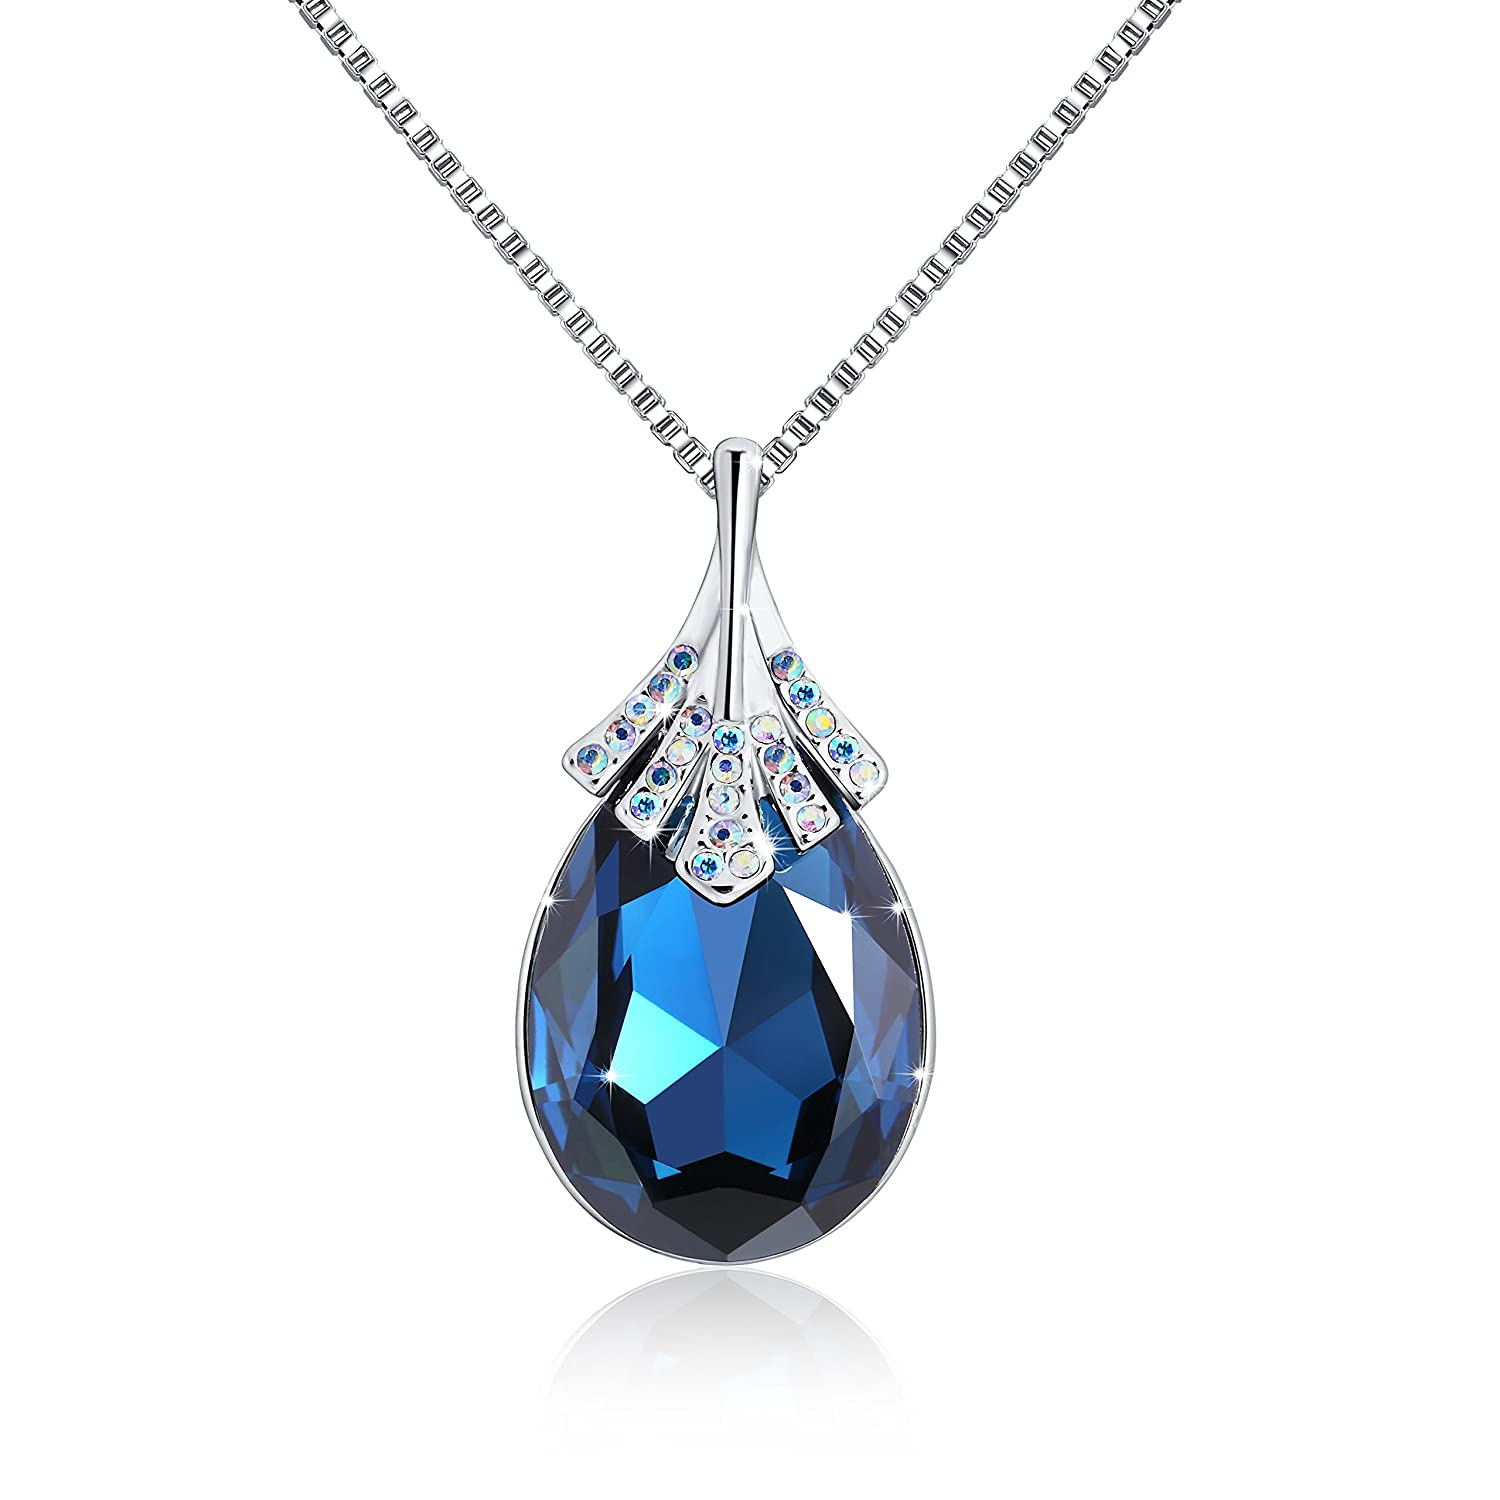 OSIANA'Big Teardrop 18K GP Pendant Necklace Made Swarovski Crystal 18' Osianastyle NK-014